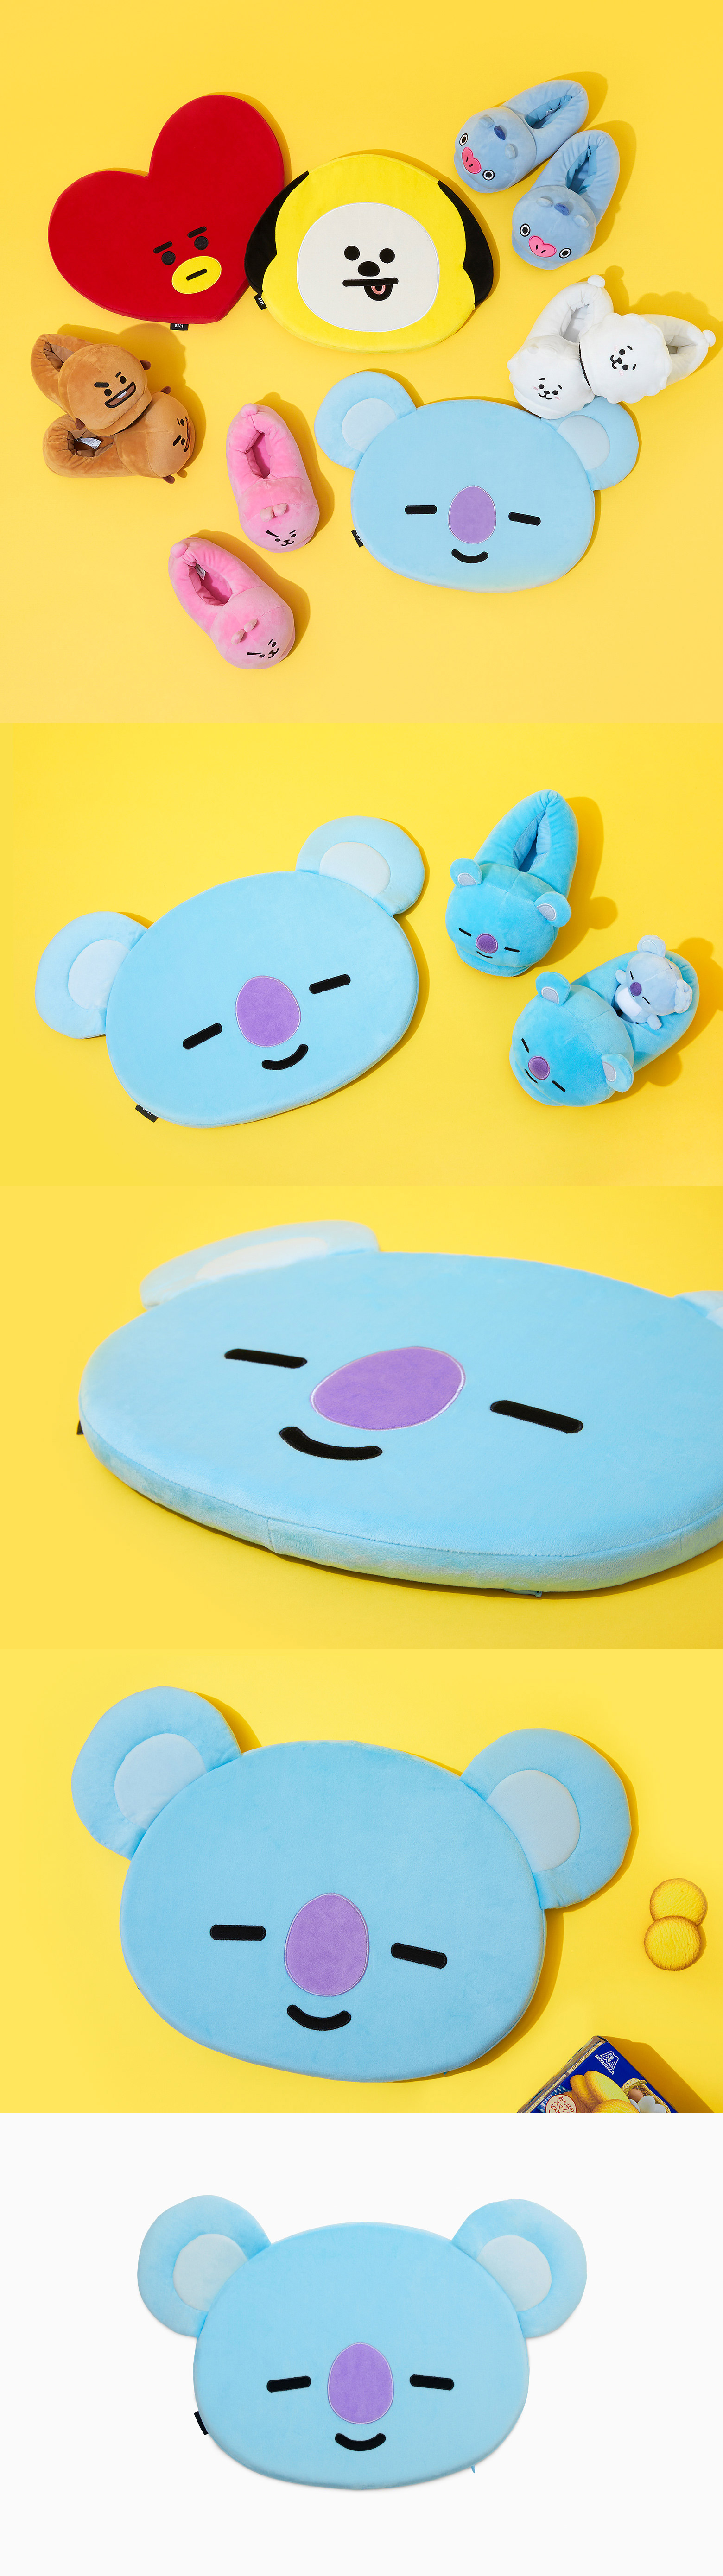 bt21_headsittingcushion.jpg